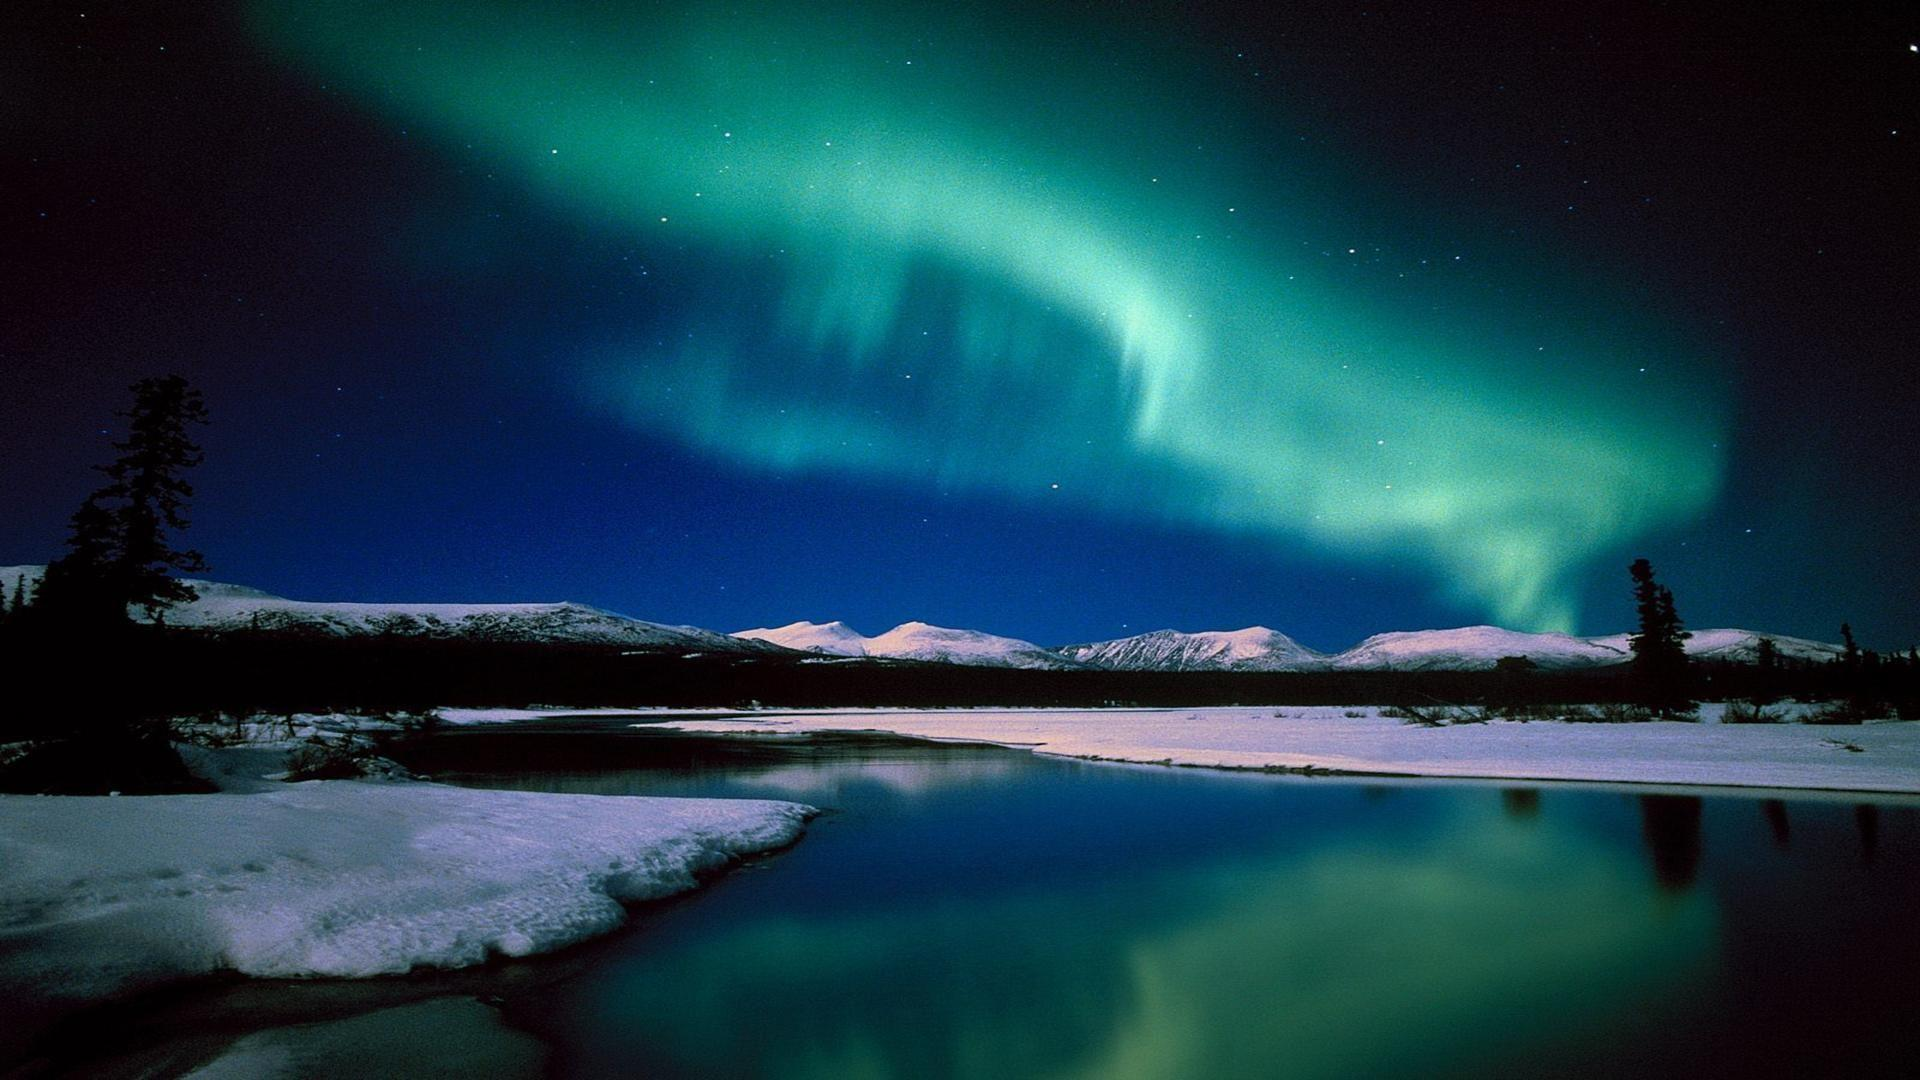 Aurora Borealis Wallpaper Desktop wallpaper wallpaper hd 1920x1080